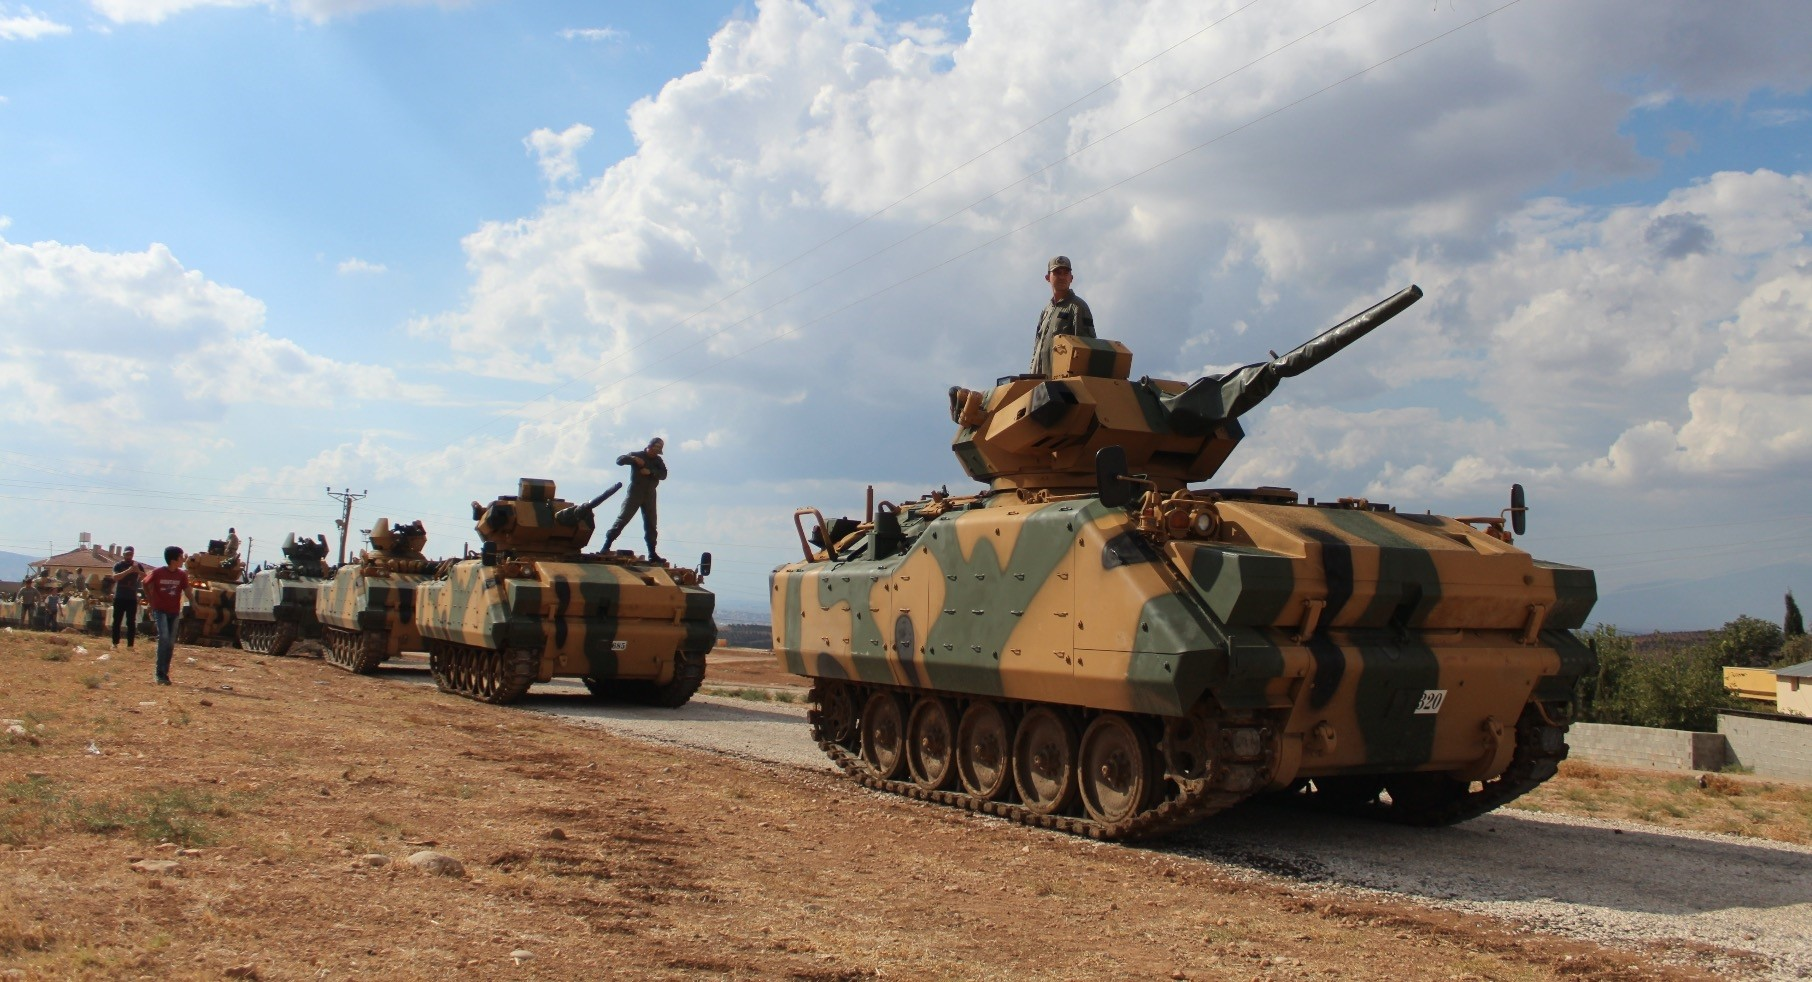 The Turkish army entered Syria's Idlib on Oct. 12 as a part of an operation to set up a de-escalation zone in Idlib.